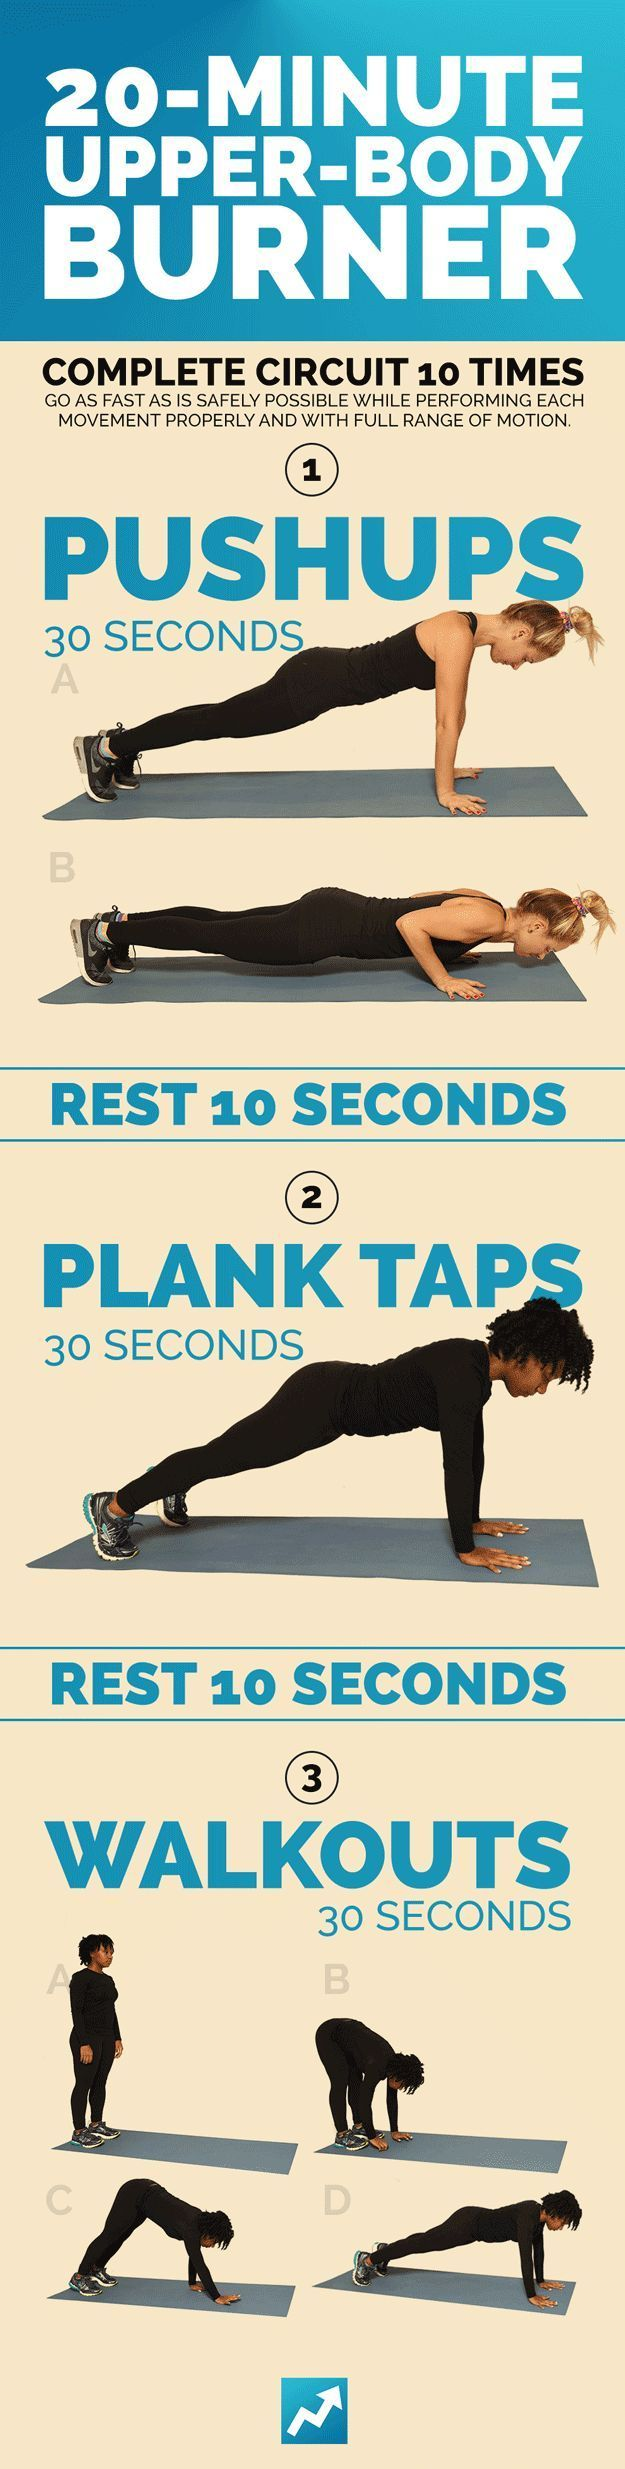 Gym-optional, no-equipment-necessary workouts for all fitness levels. You can do this.